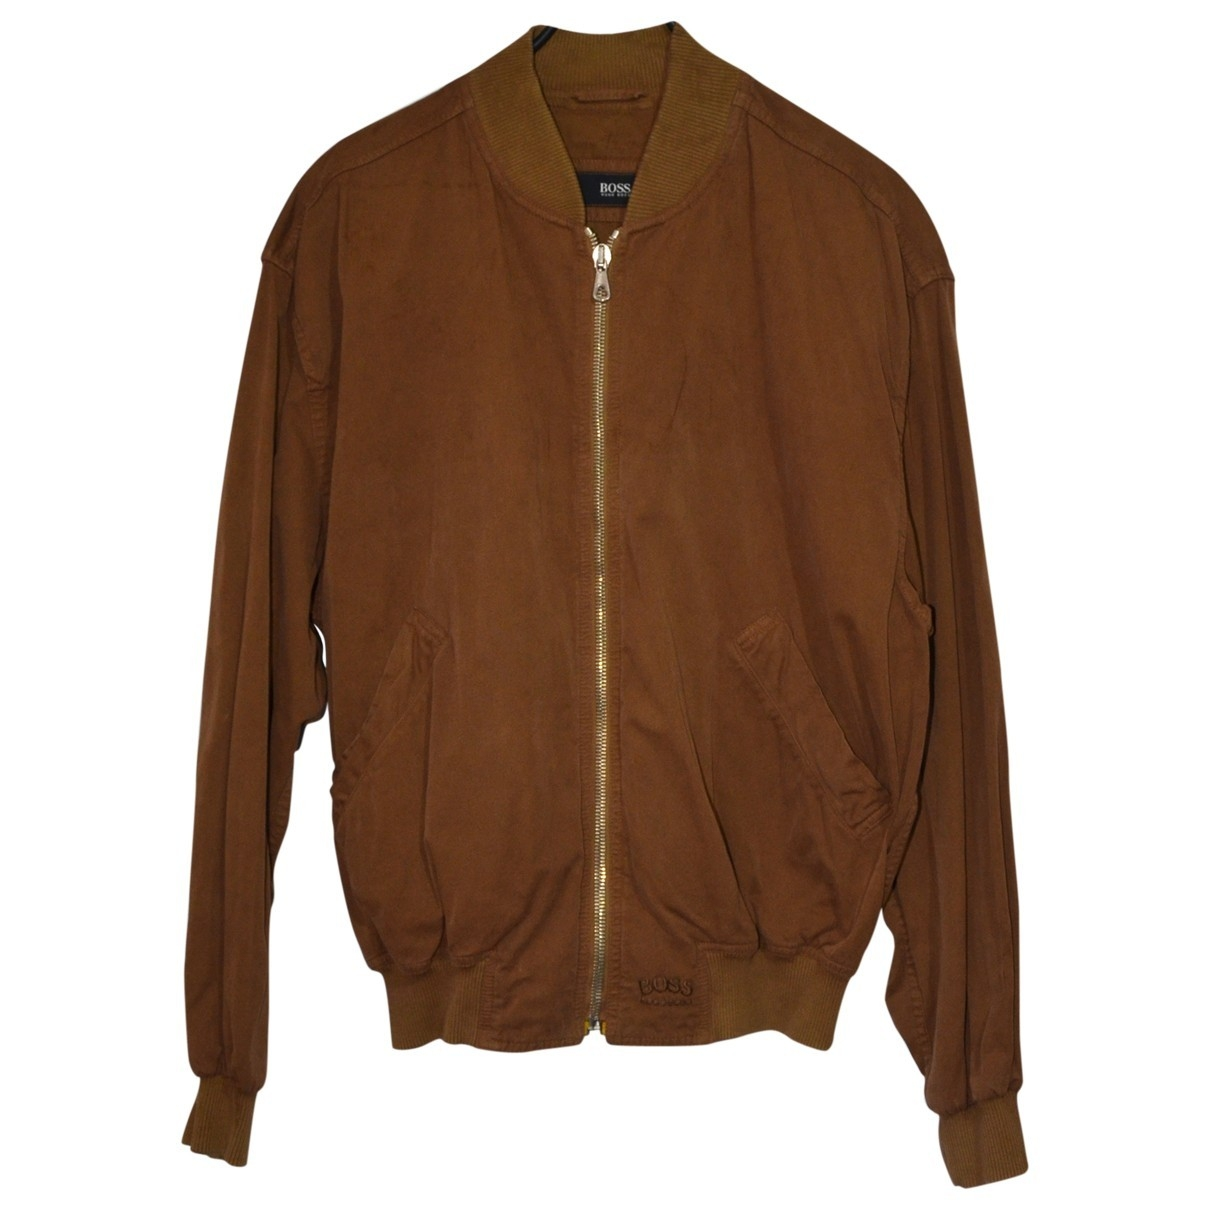 Hugo Boss \N Camel Cotton jacket  for Men M International